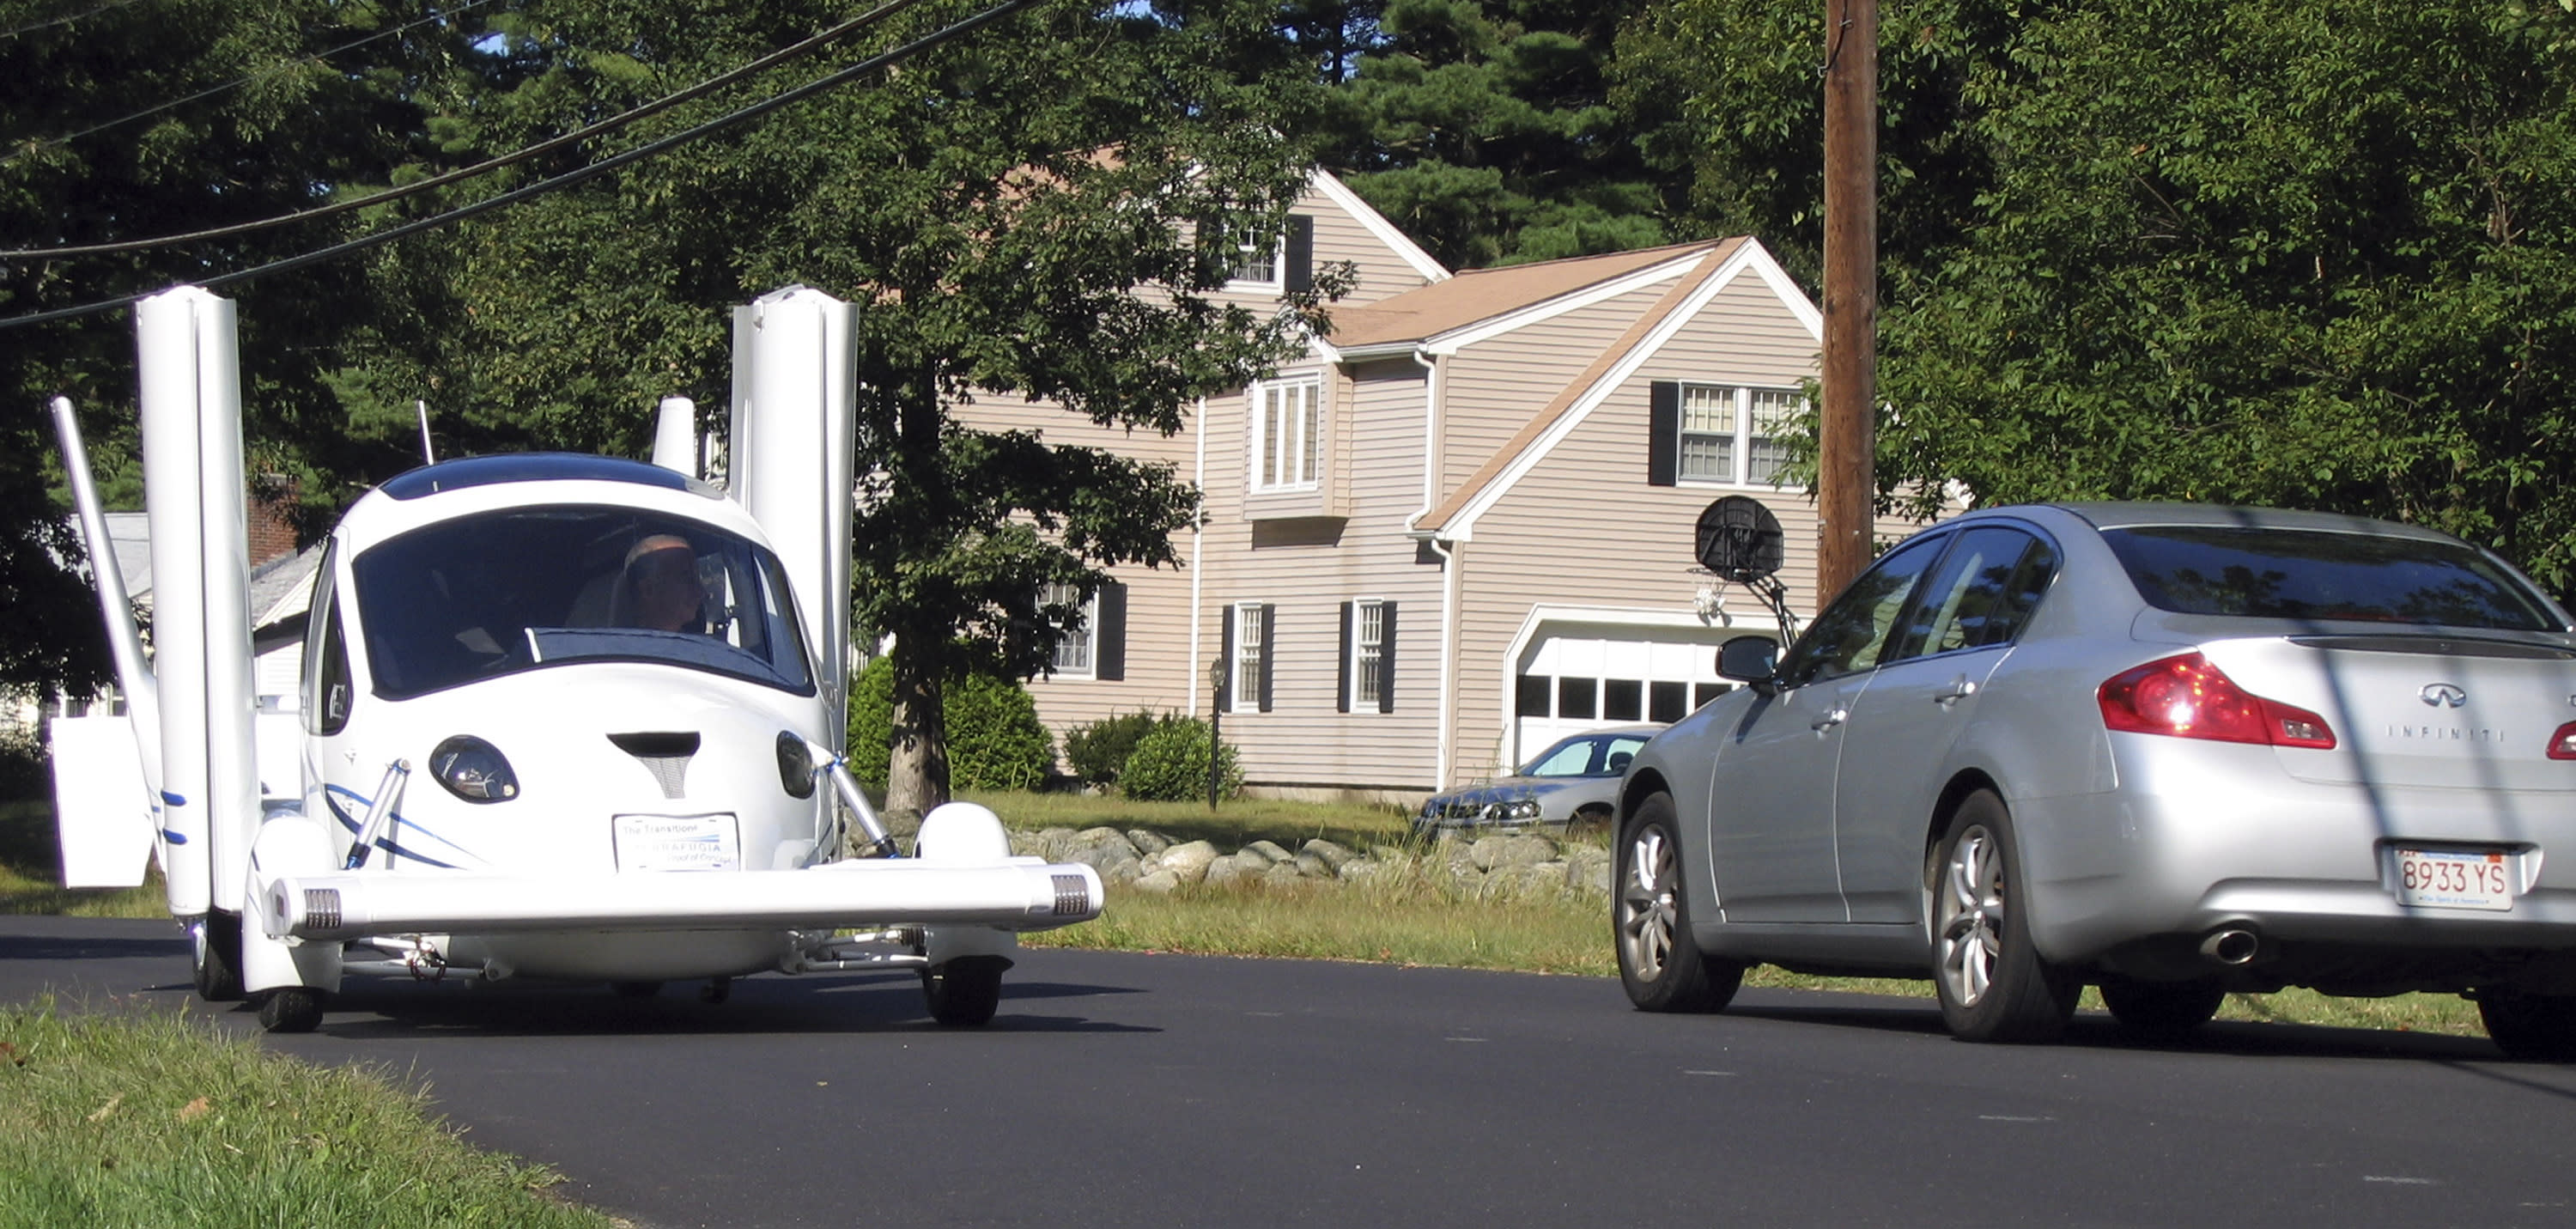 In this 2008 photo, the Terrafugia Transition drives down a street during road testing in Westford, Mass. The Terrafugia can take off and cruise at 115 mph, land, fold up it wings in 30 seconds and turn back into a car. In two years you'll be able to get one for $194,000, according to the Paxton, Ill., man who helped create it. (AP Photo/courtesy Terrafugia)